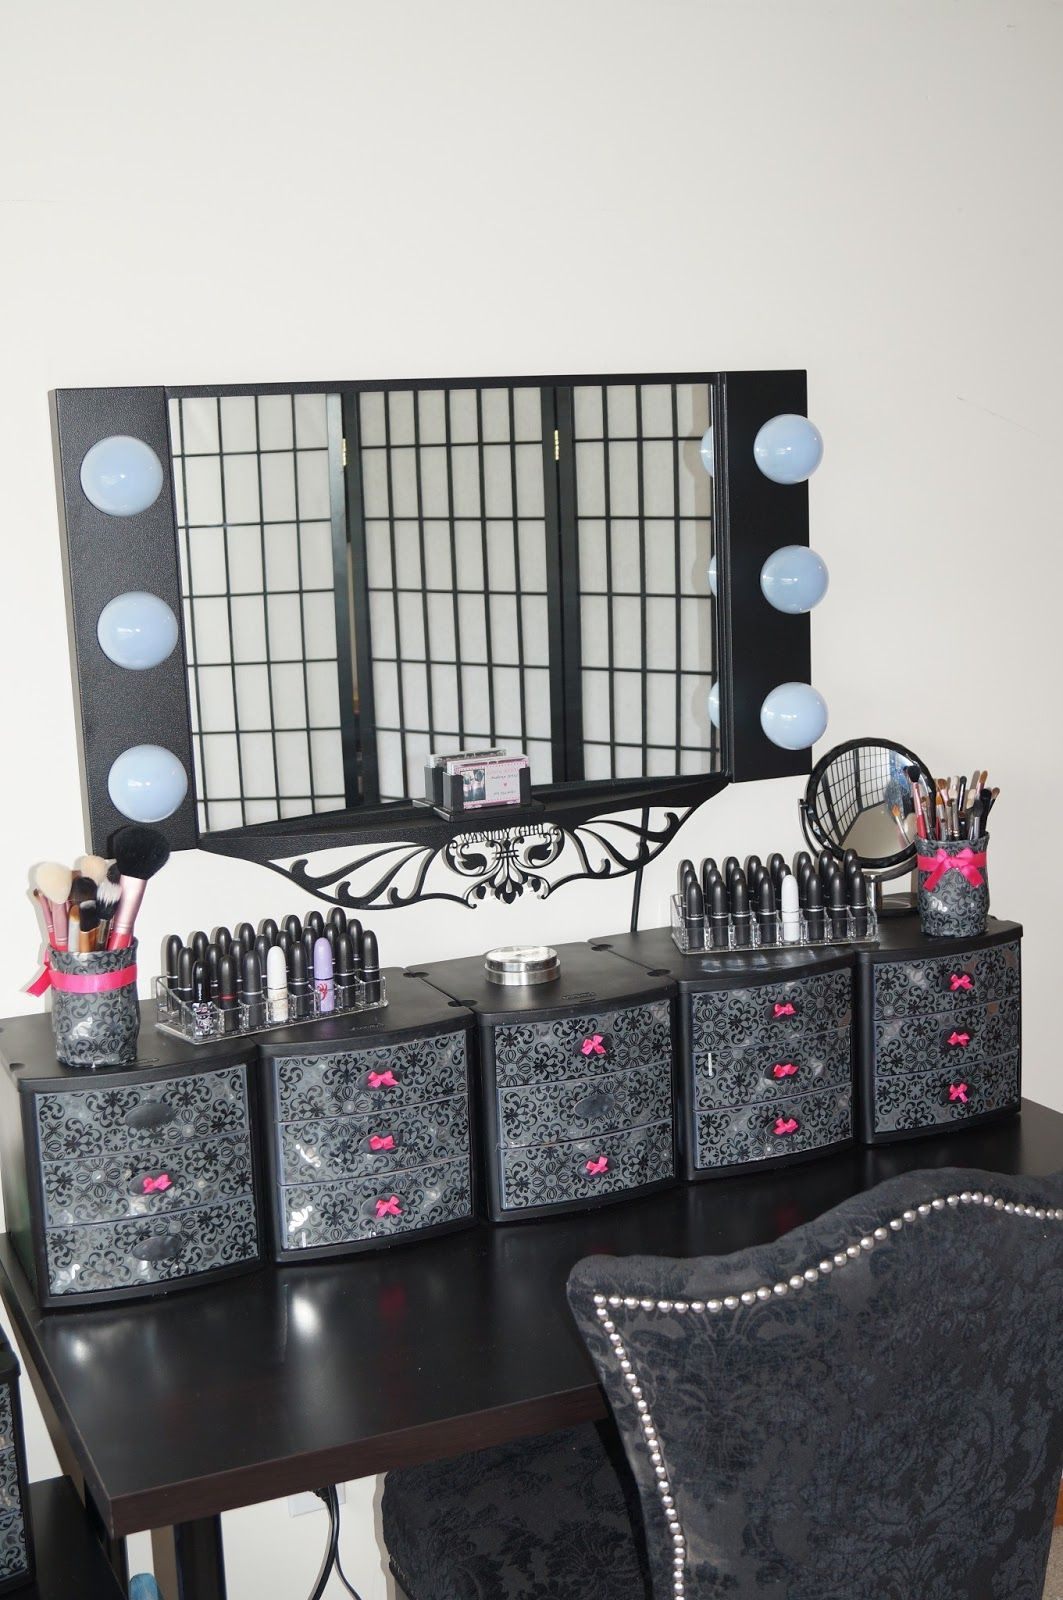 Decorate Plastic Drawer To Make Your Own Make Up Table Decorate Plastic Drawers